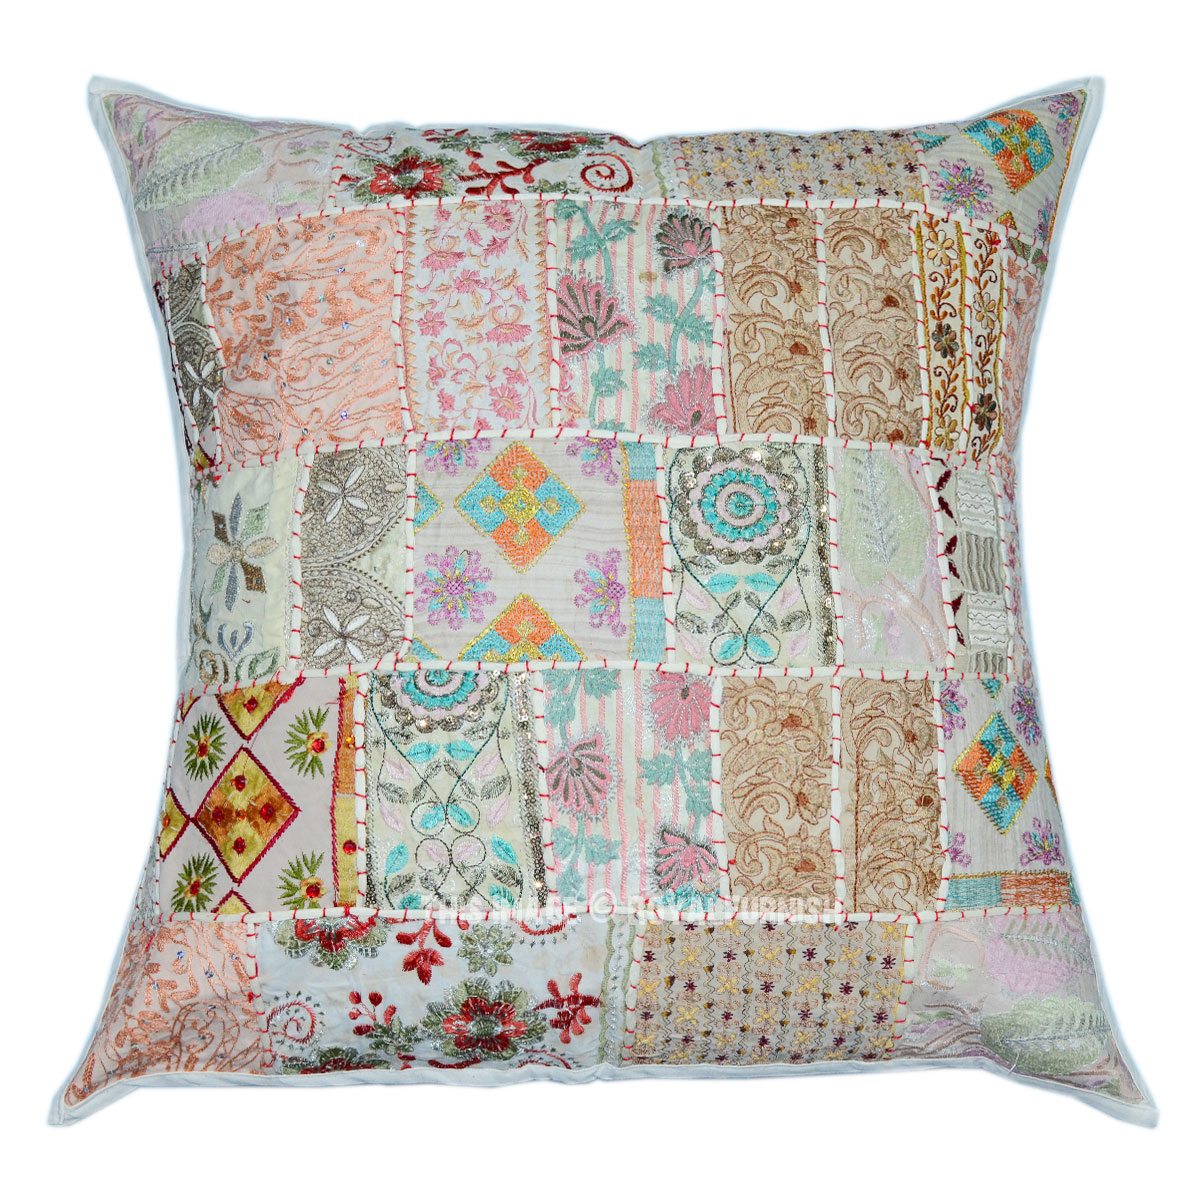 White Oversized Vintage Boho Patchwork Square Indian Throw Pillow Cover